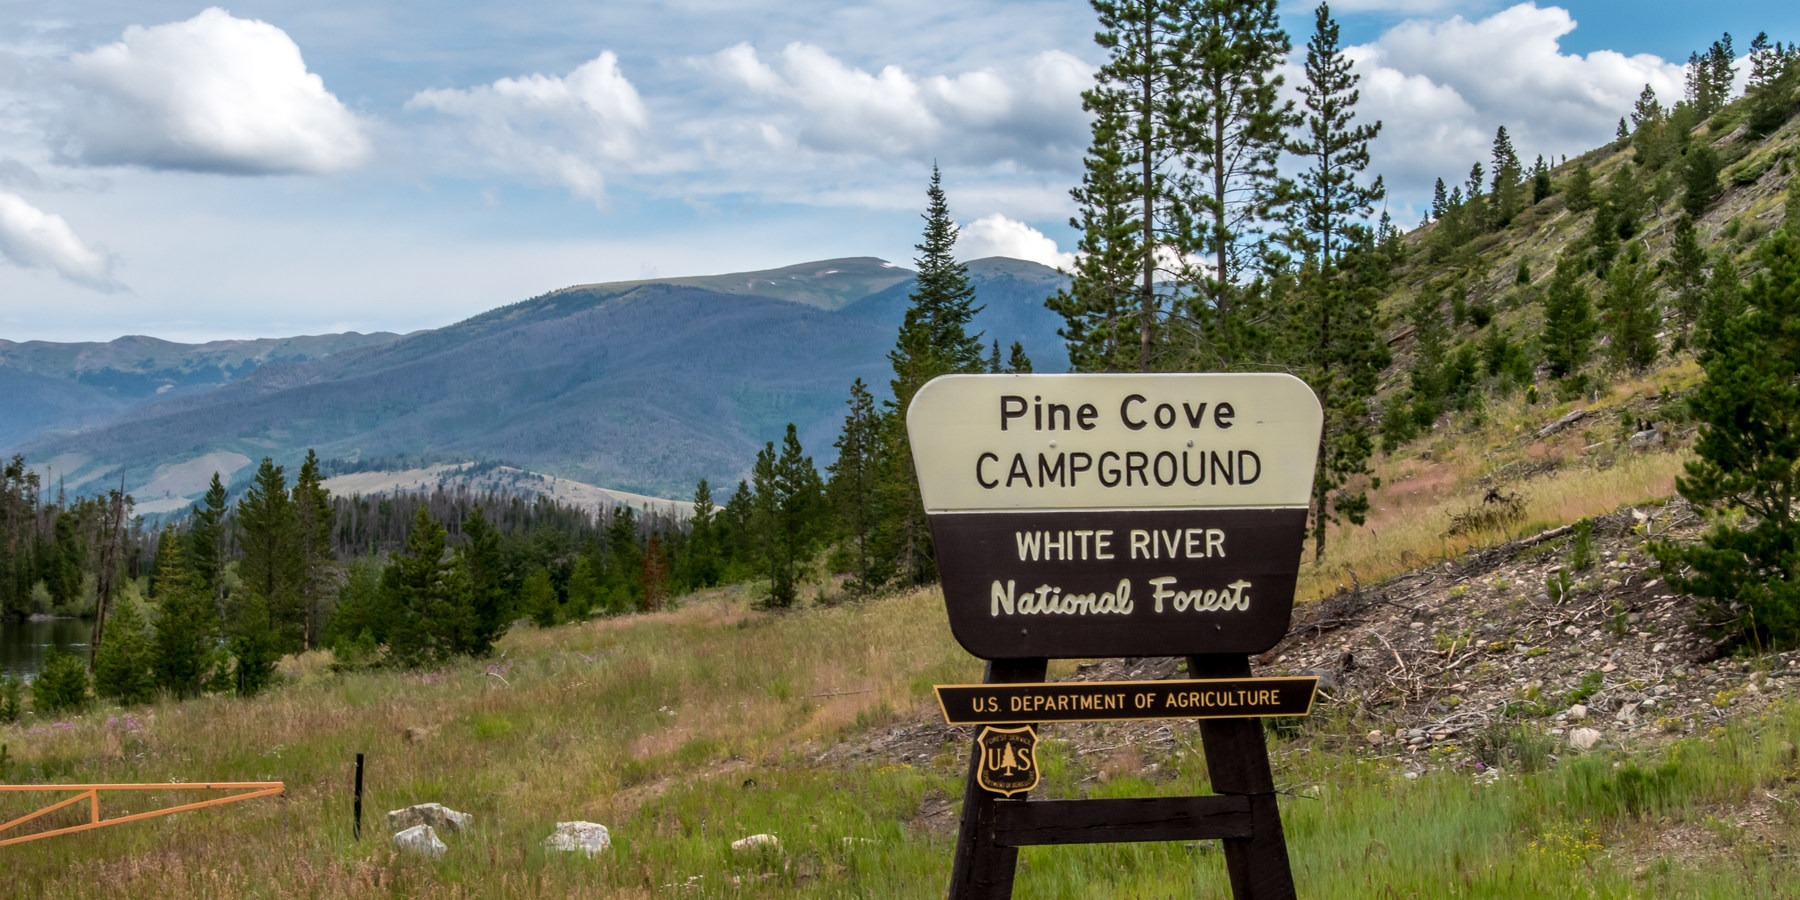 pine river chat sites Pine river area schools complies with applicable federal civil rights laws and does not discriminate on the basis of race, color, national origin, age.